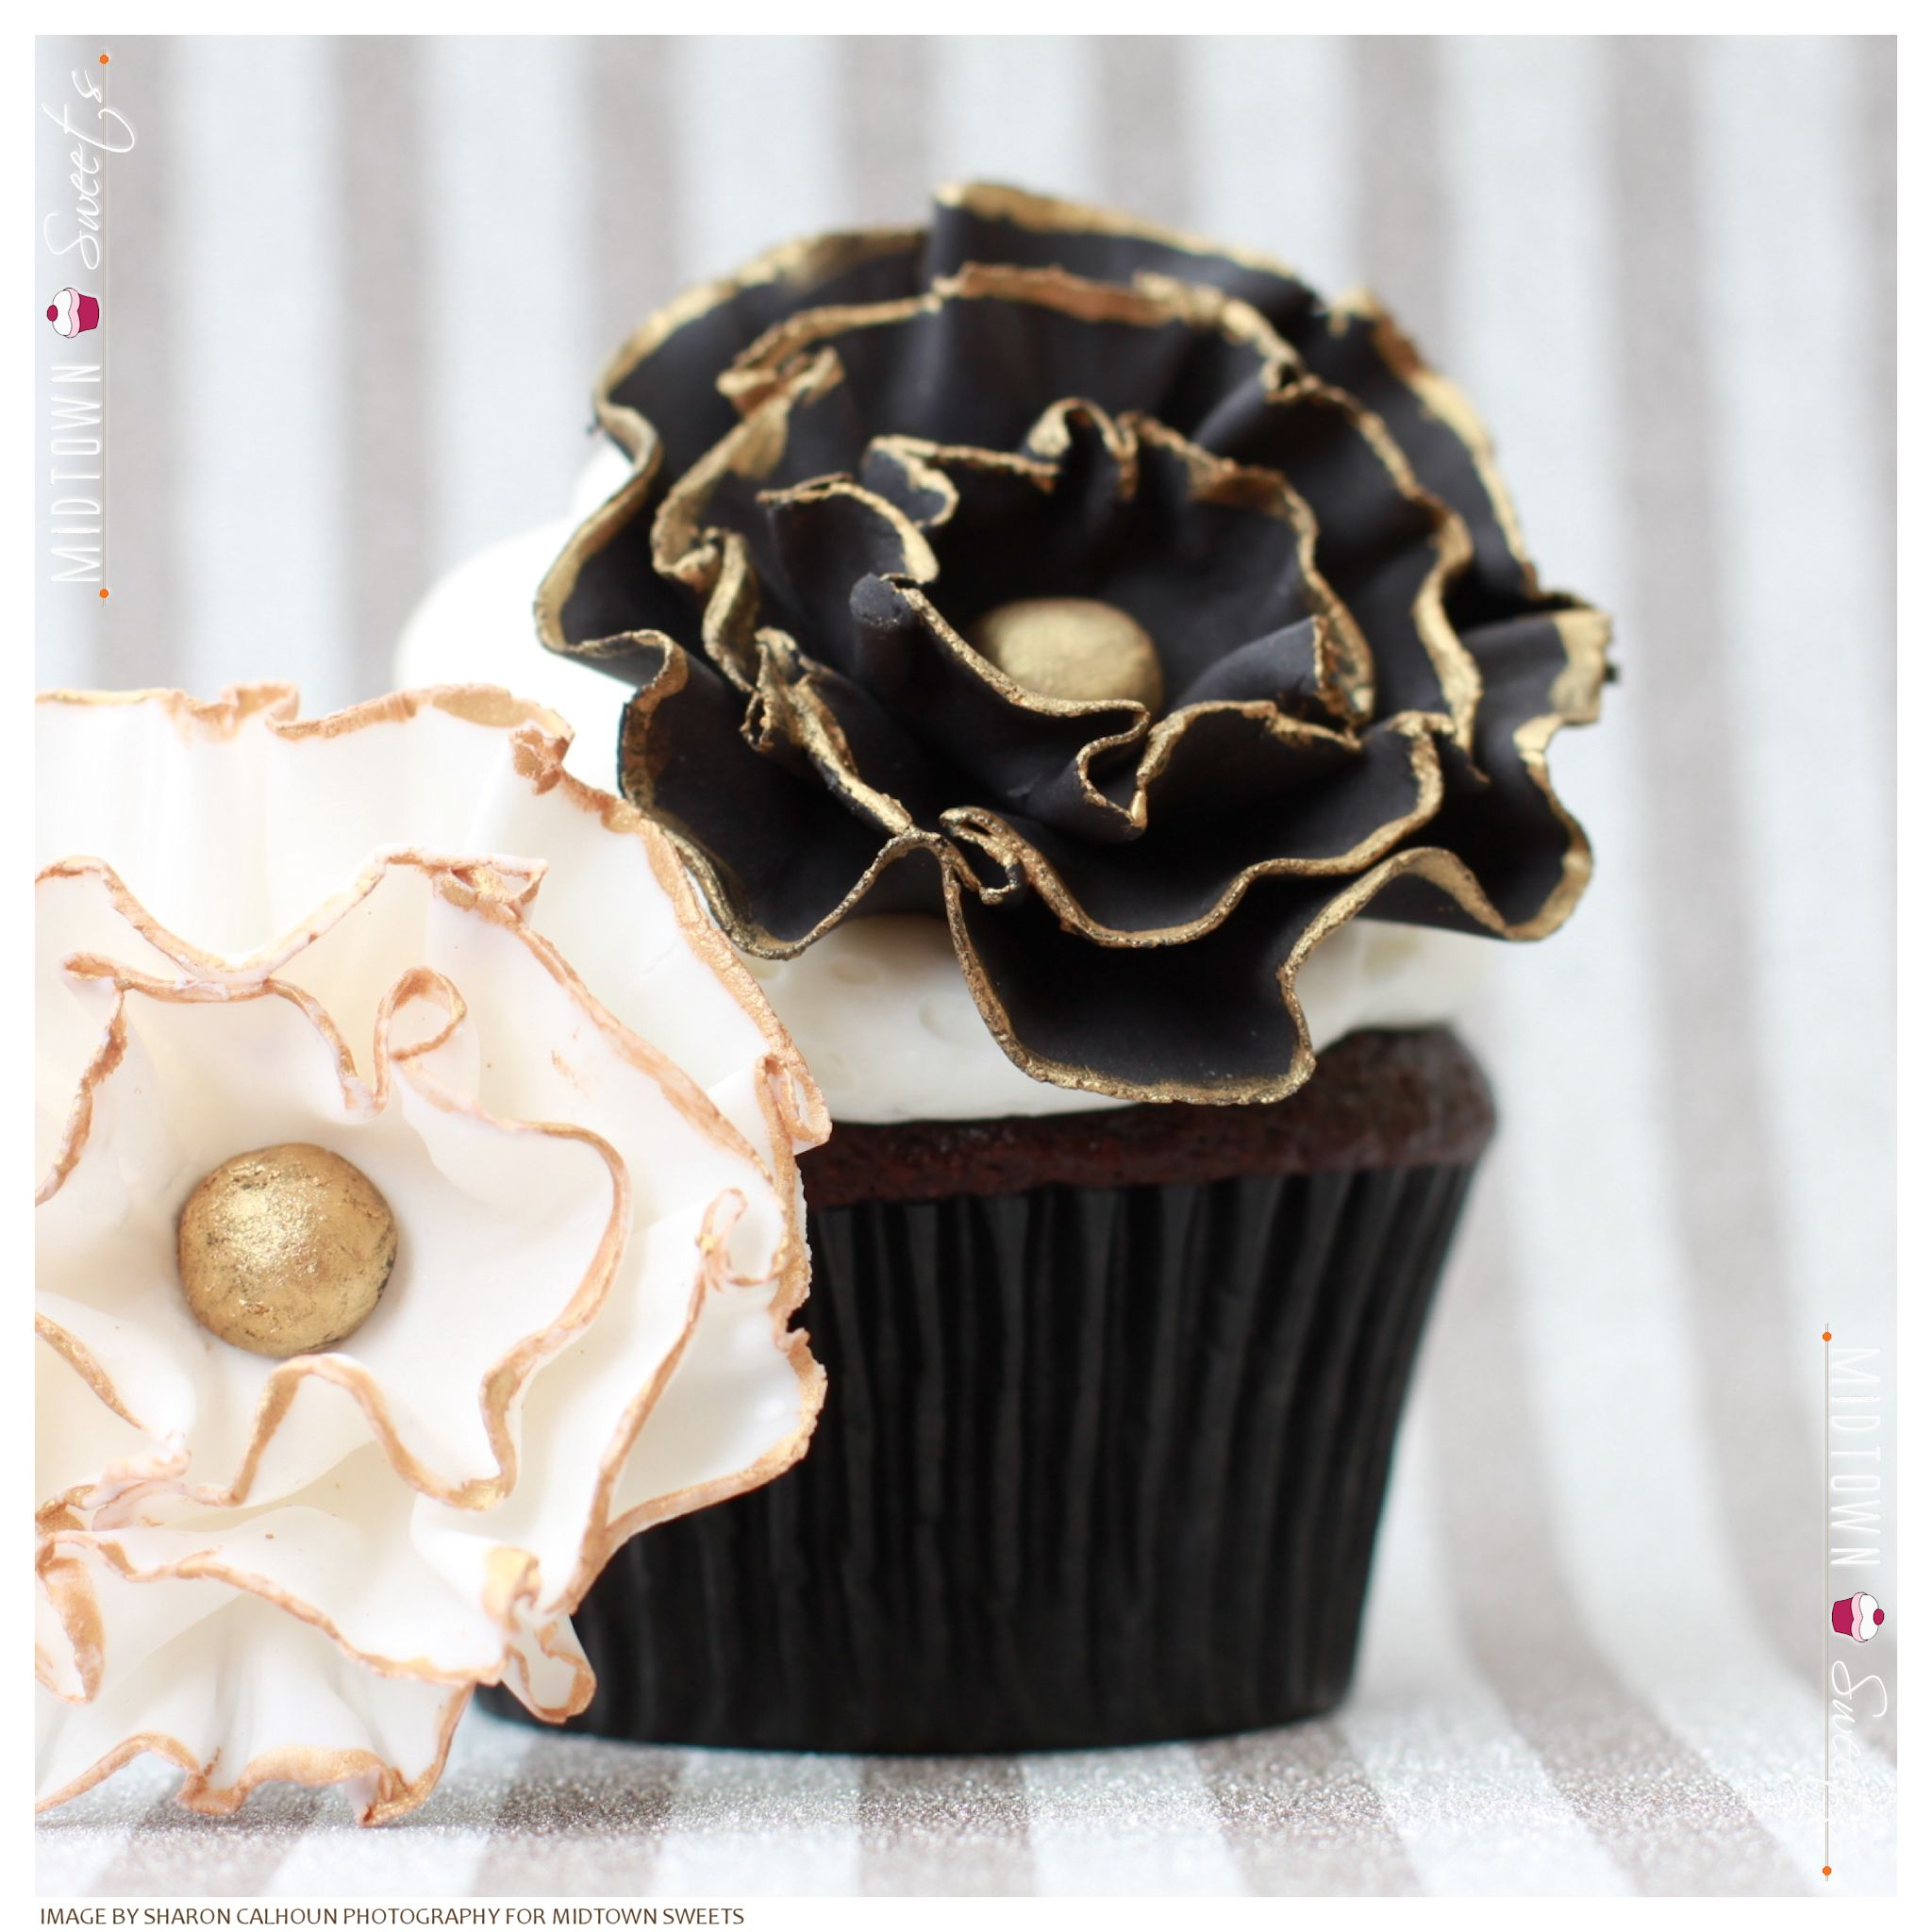 Black & White Flower Cupcakes With Gold Trim